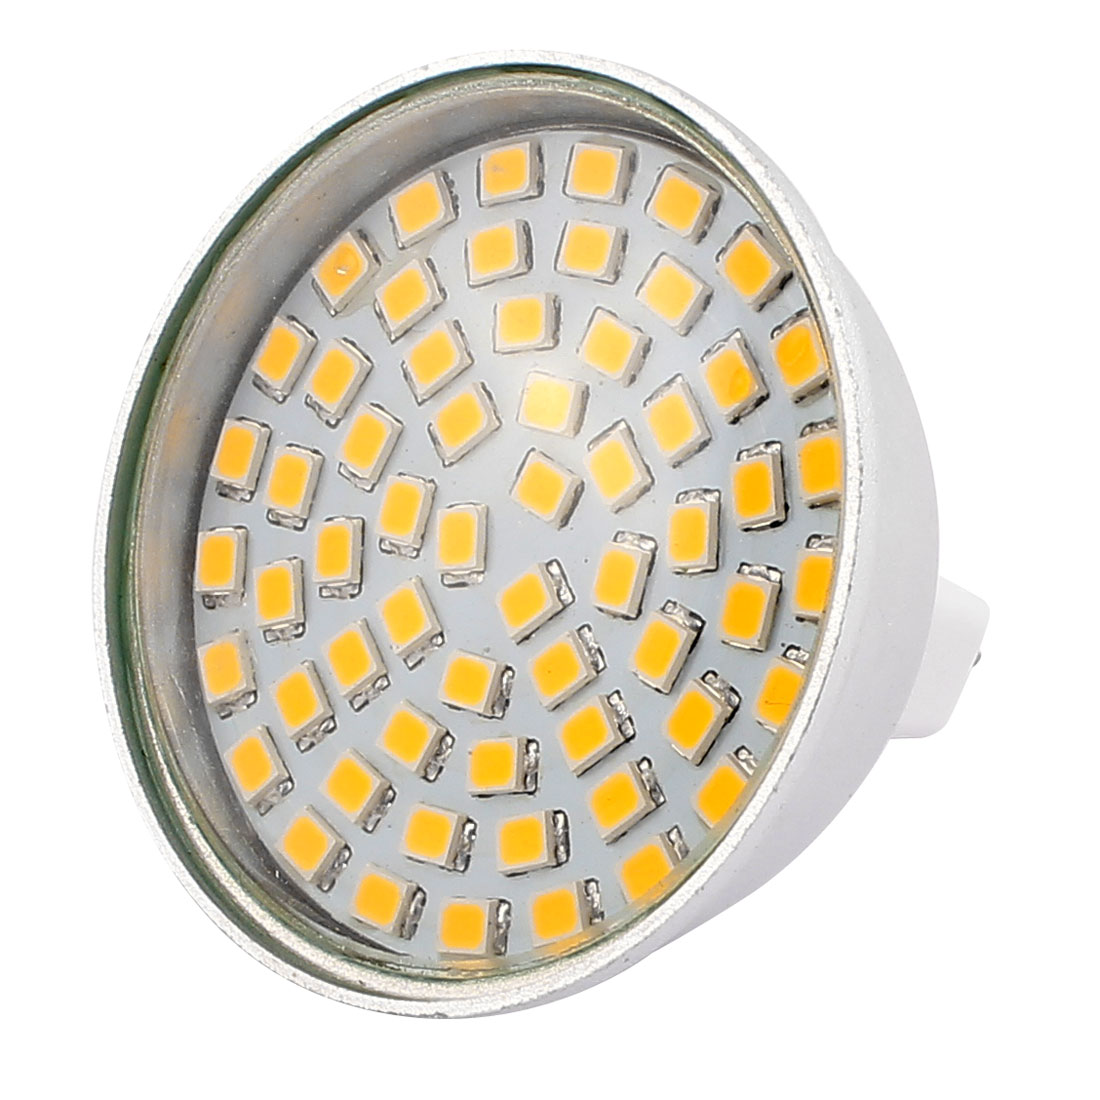 220V-240V 6W MR16 2835 SMD 60 LEDs LED Bulb Light Spotlight Lamp Energy Save Warm White